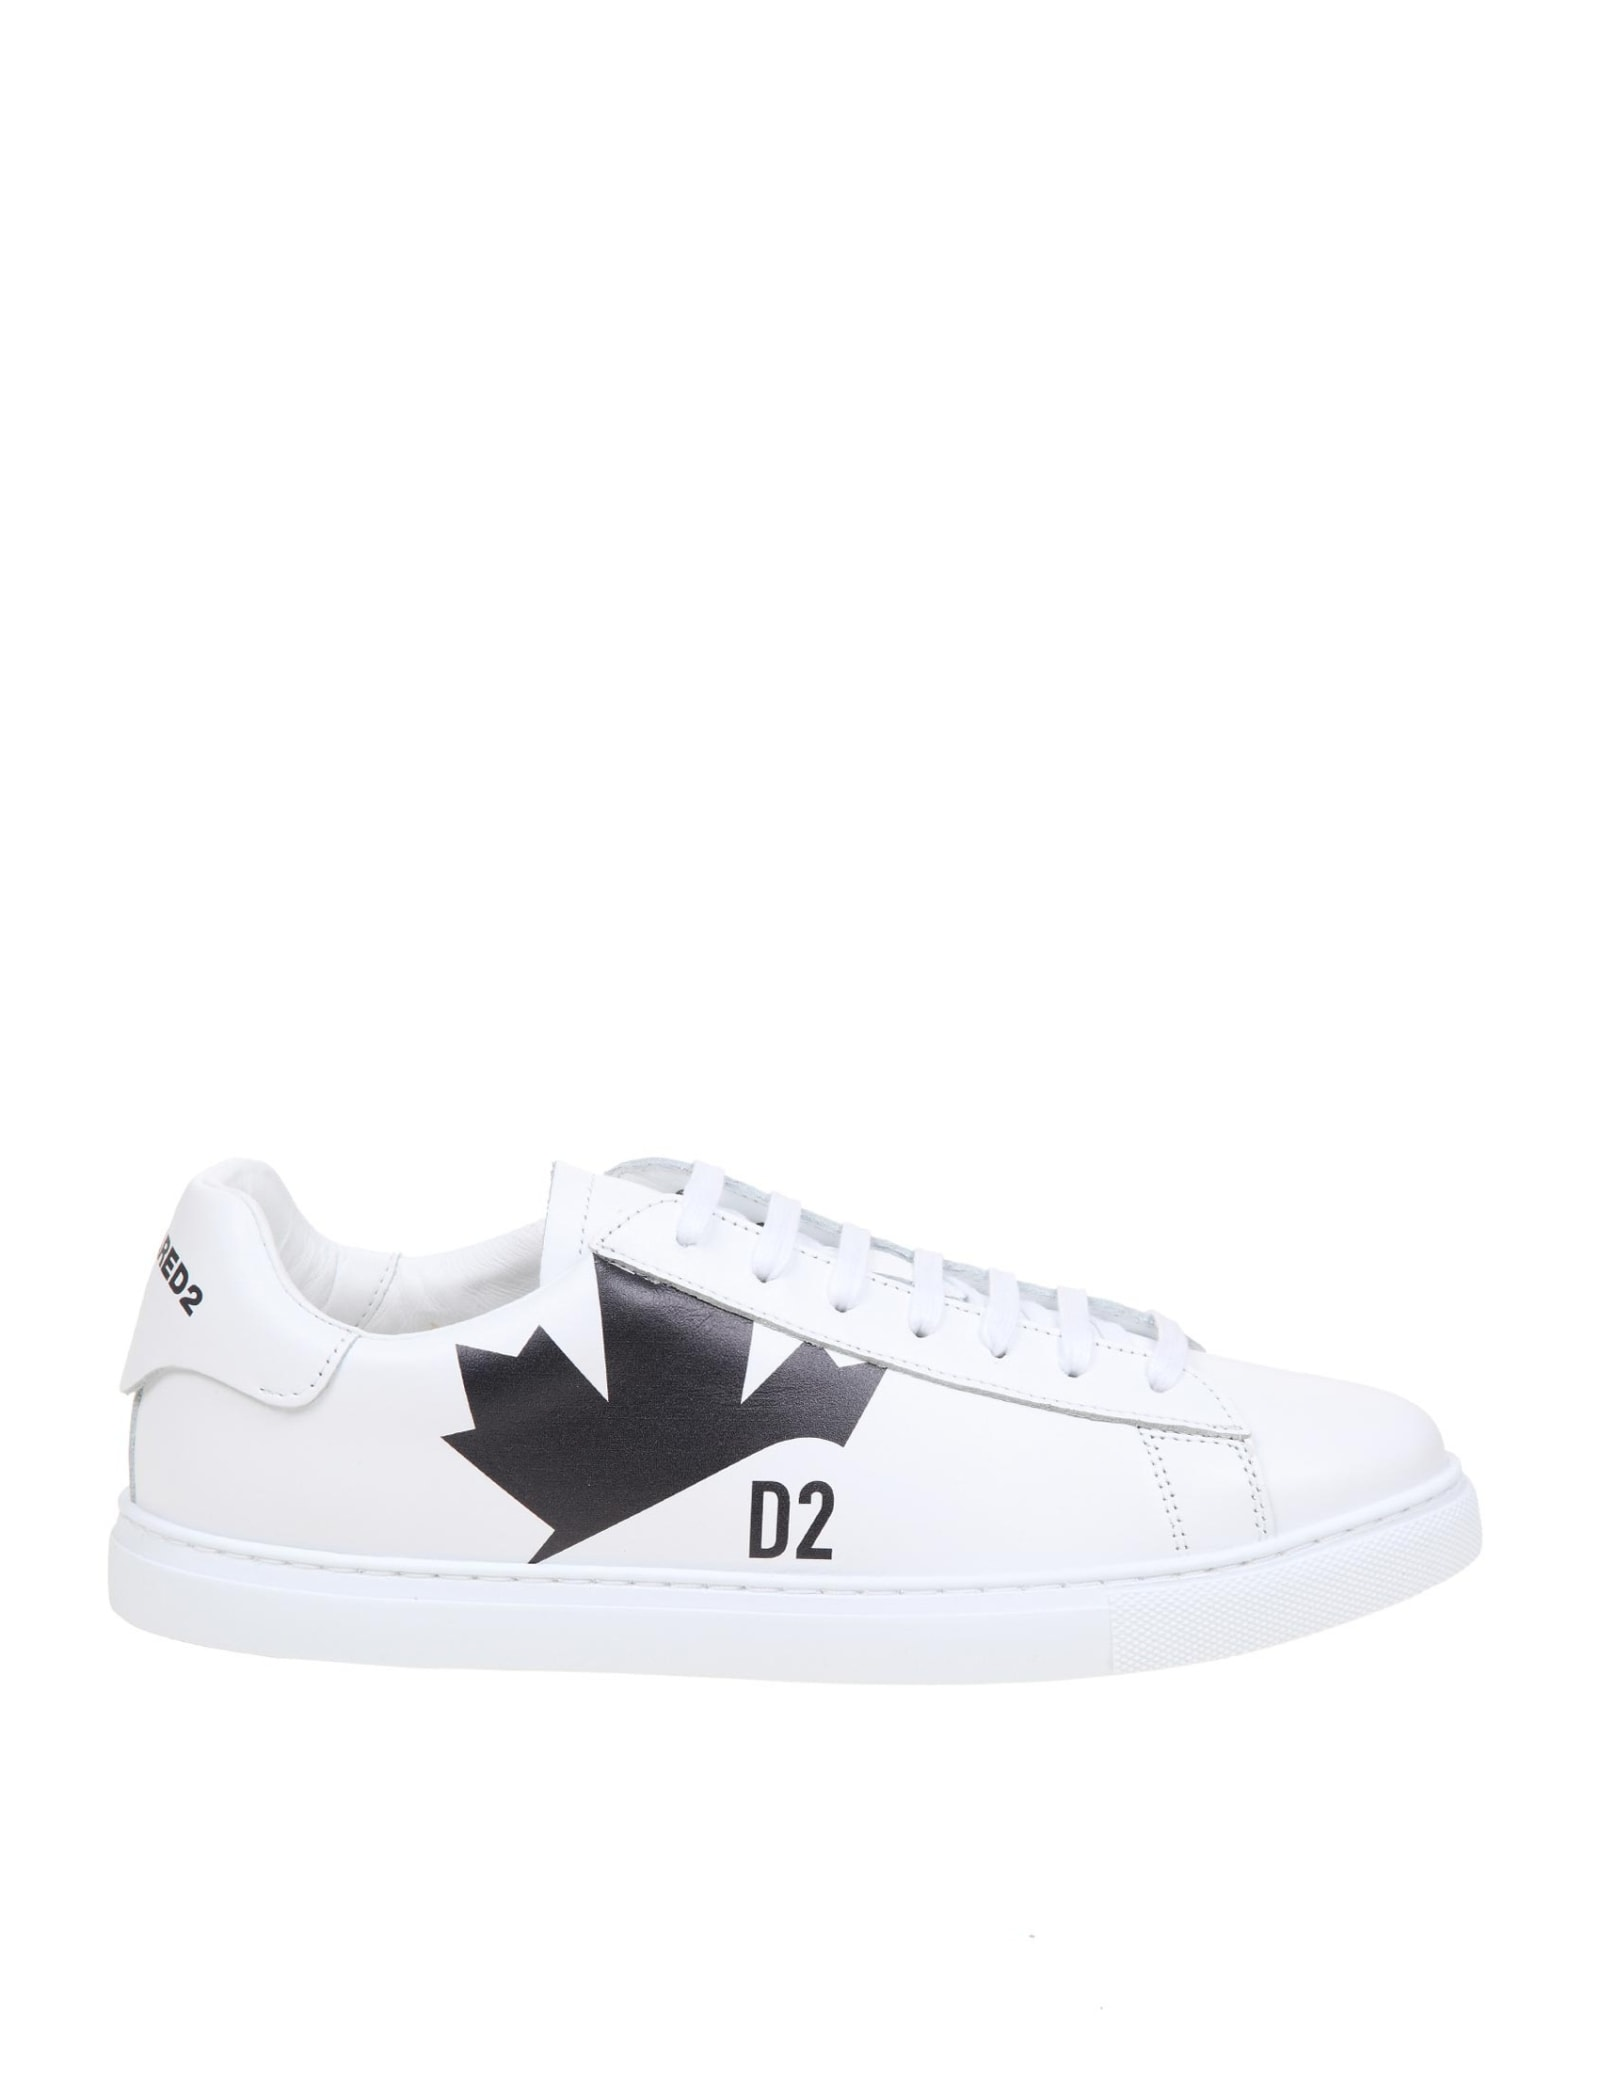 Dsquared2 NEW TENNIS SNEAKERS IN WHITE LEATHER